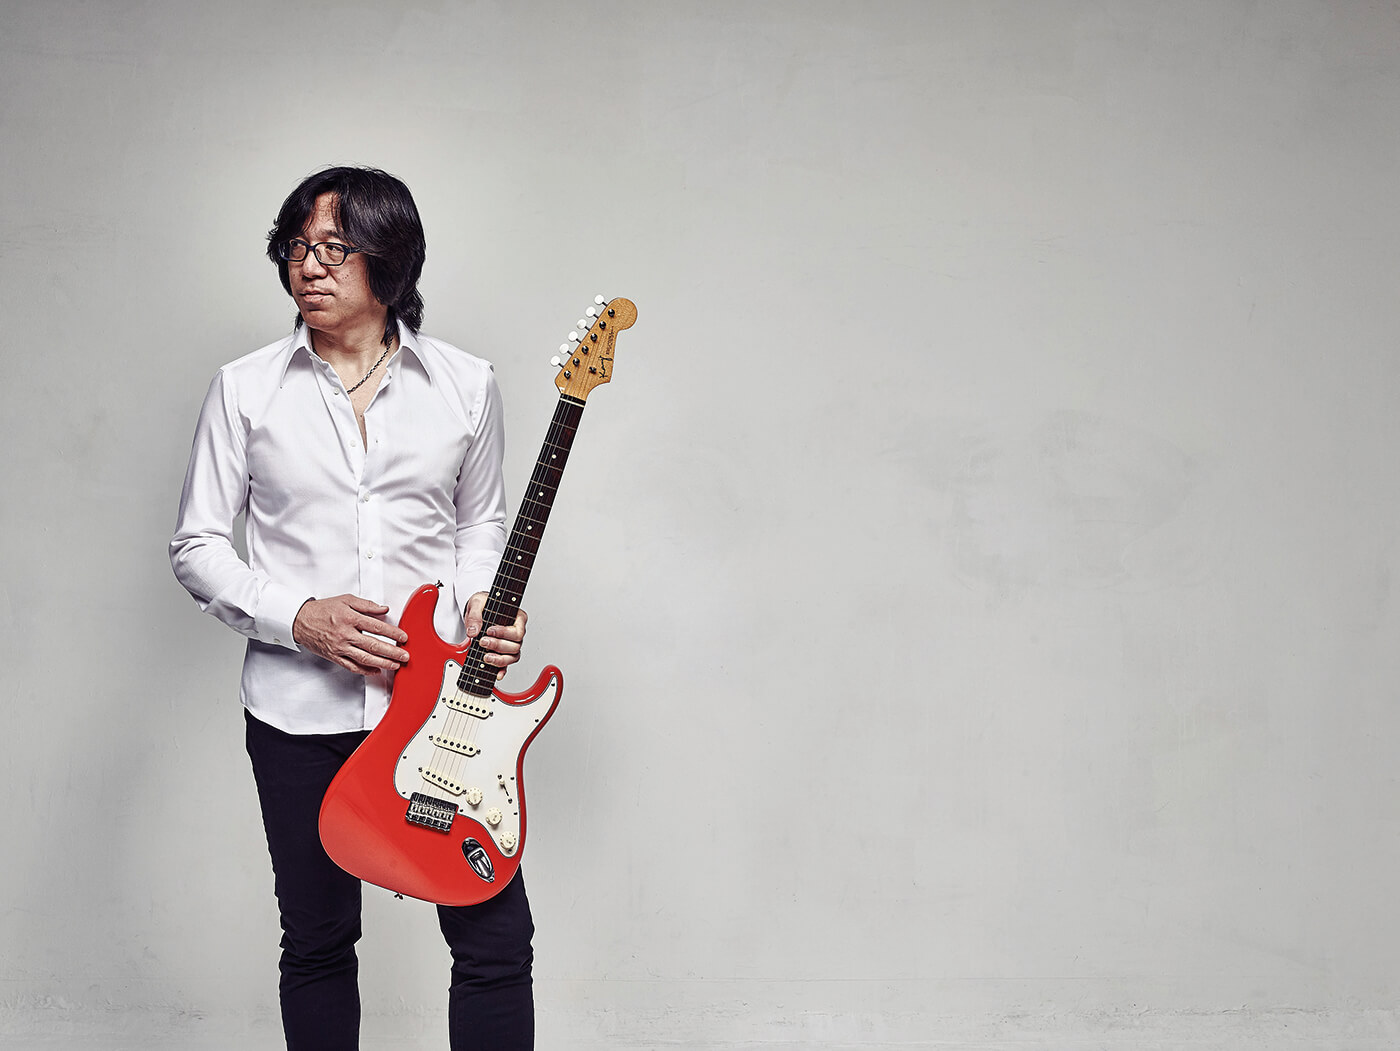 Funk master and Berklee tutor Tomo Fujita on the gear and players he loves